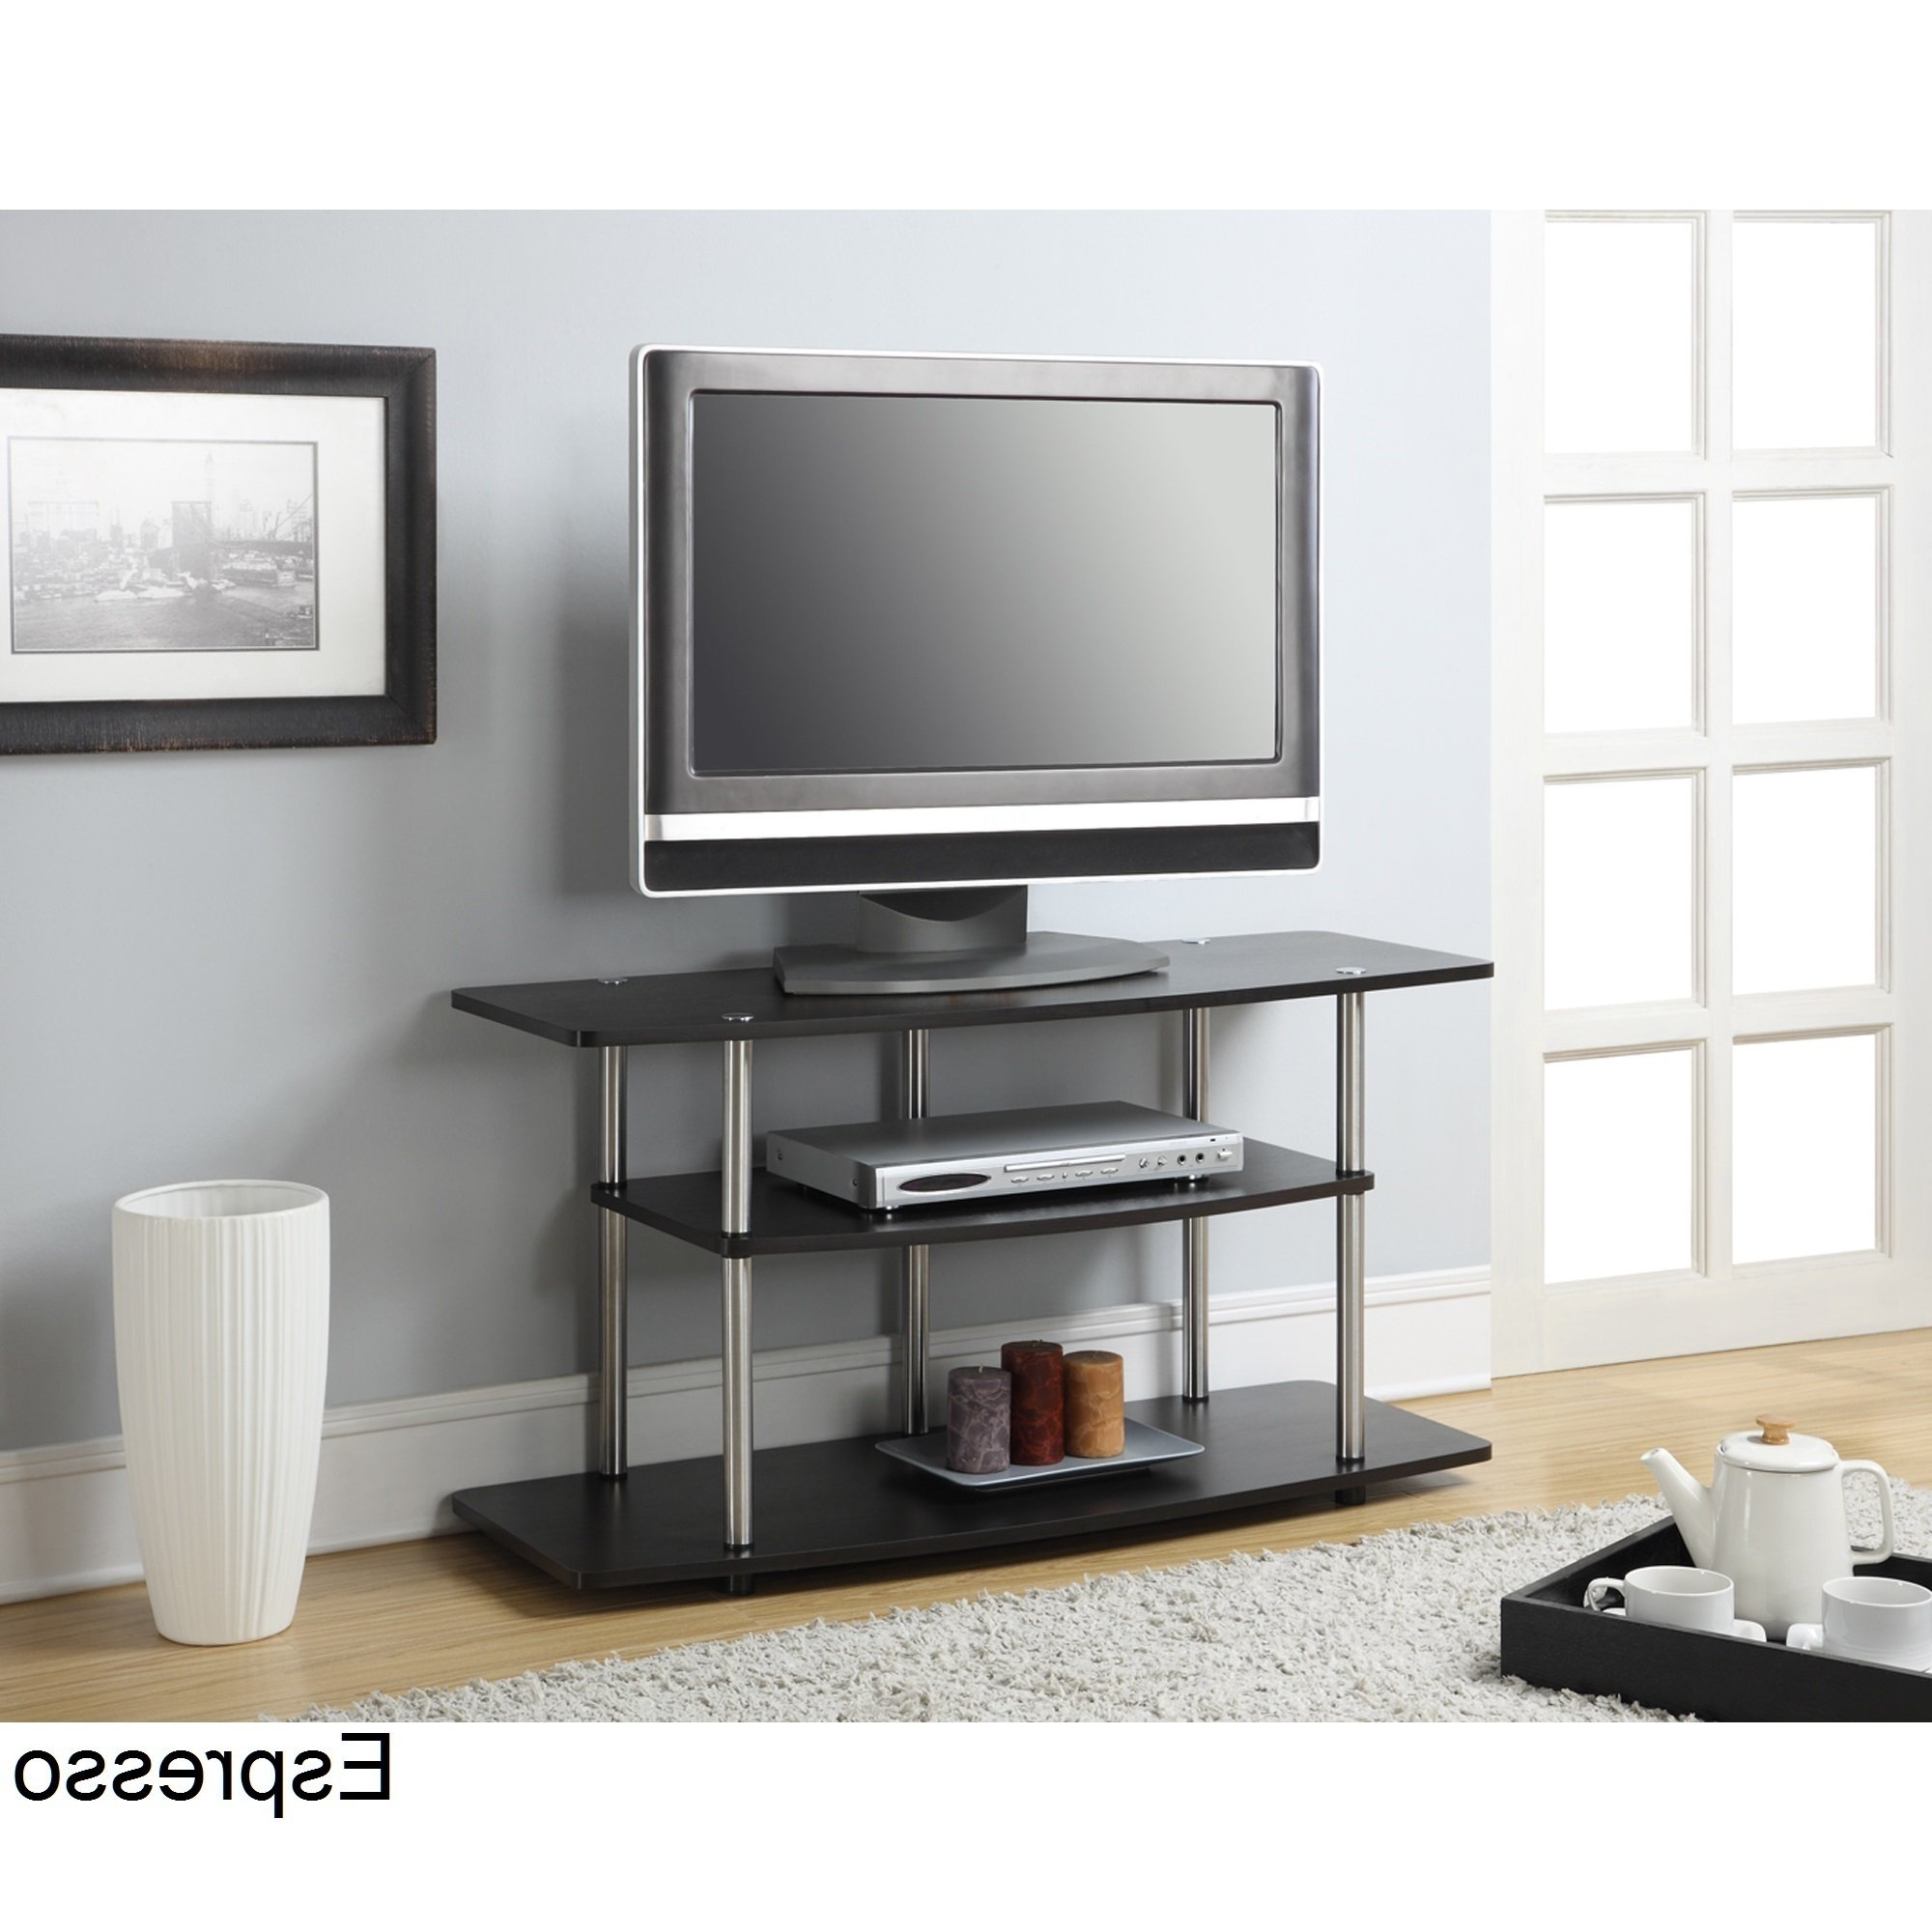 3 Tv Stands & Entertainment Centers For Less | Overstock Intended For Rowan 45 Inch Tv Stands (View 20 of 20)